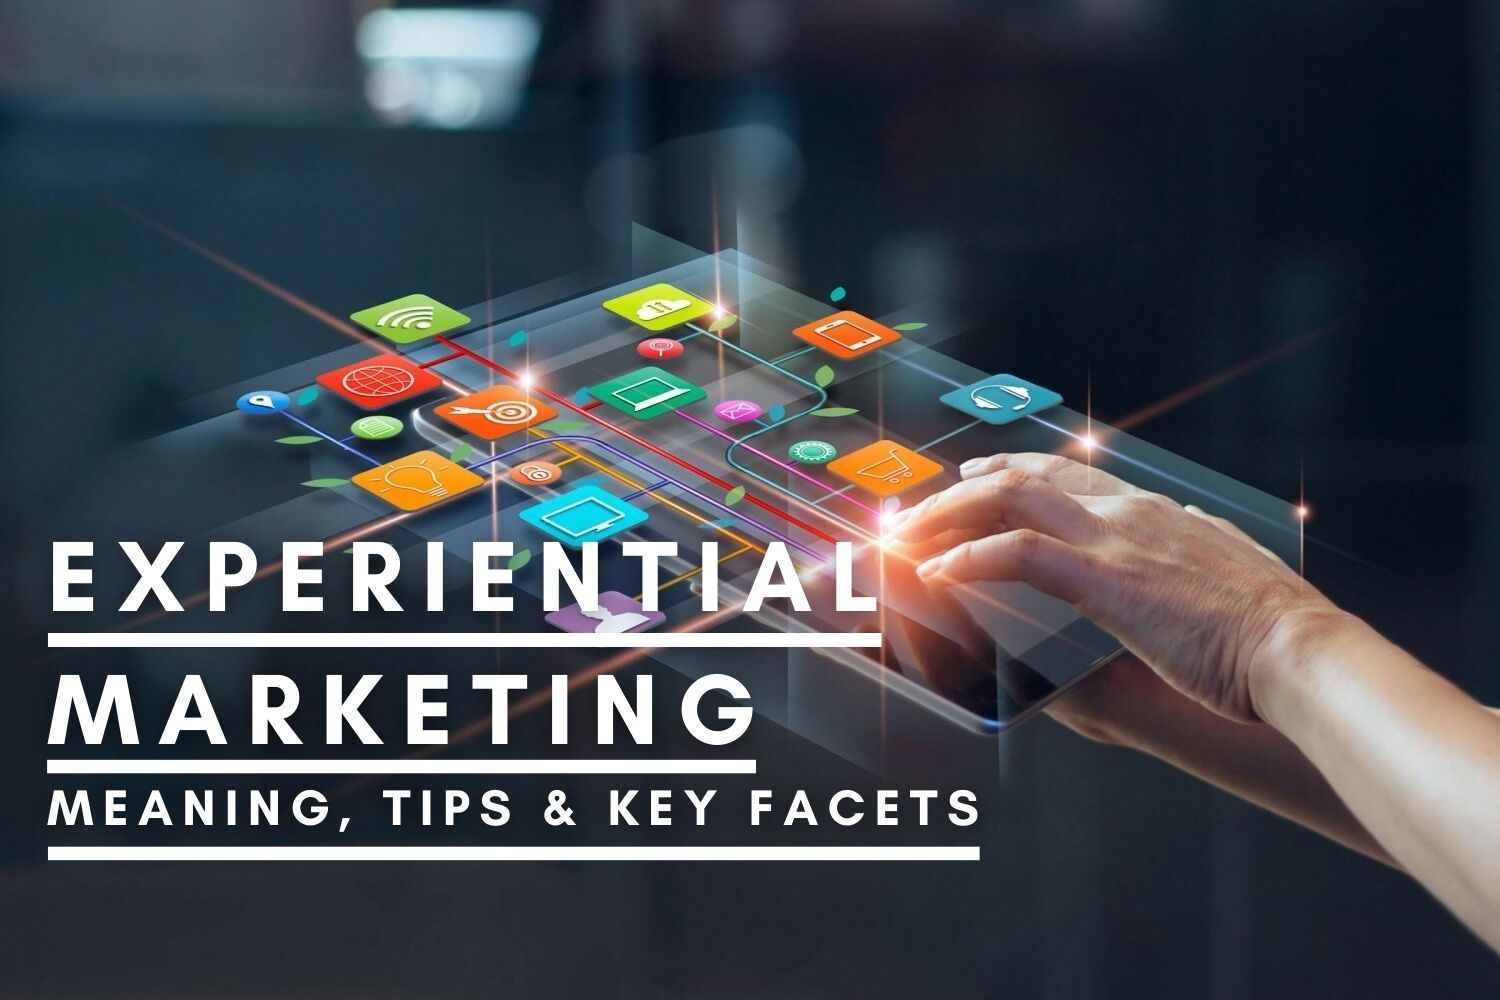 Experiential Marketing – Meaning, Tips & Key Facets To Explore In 2021